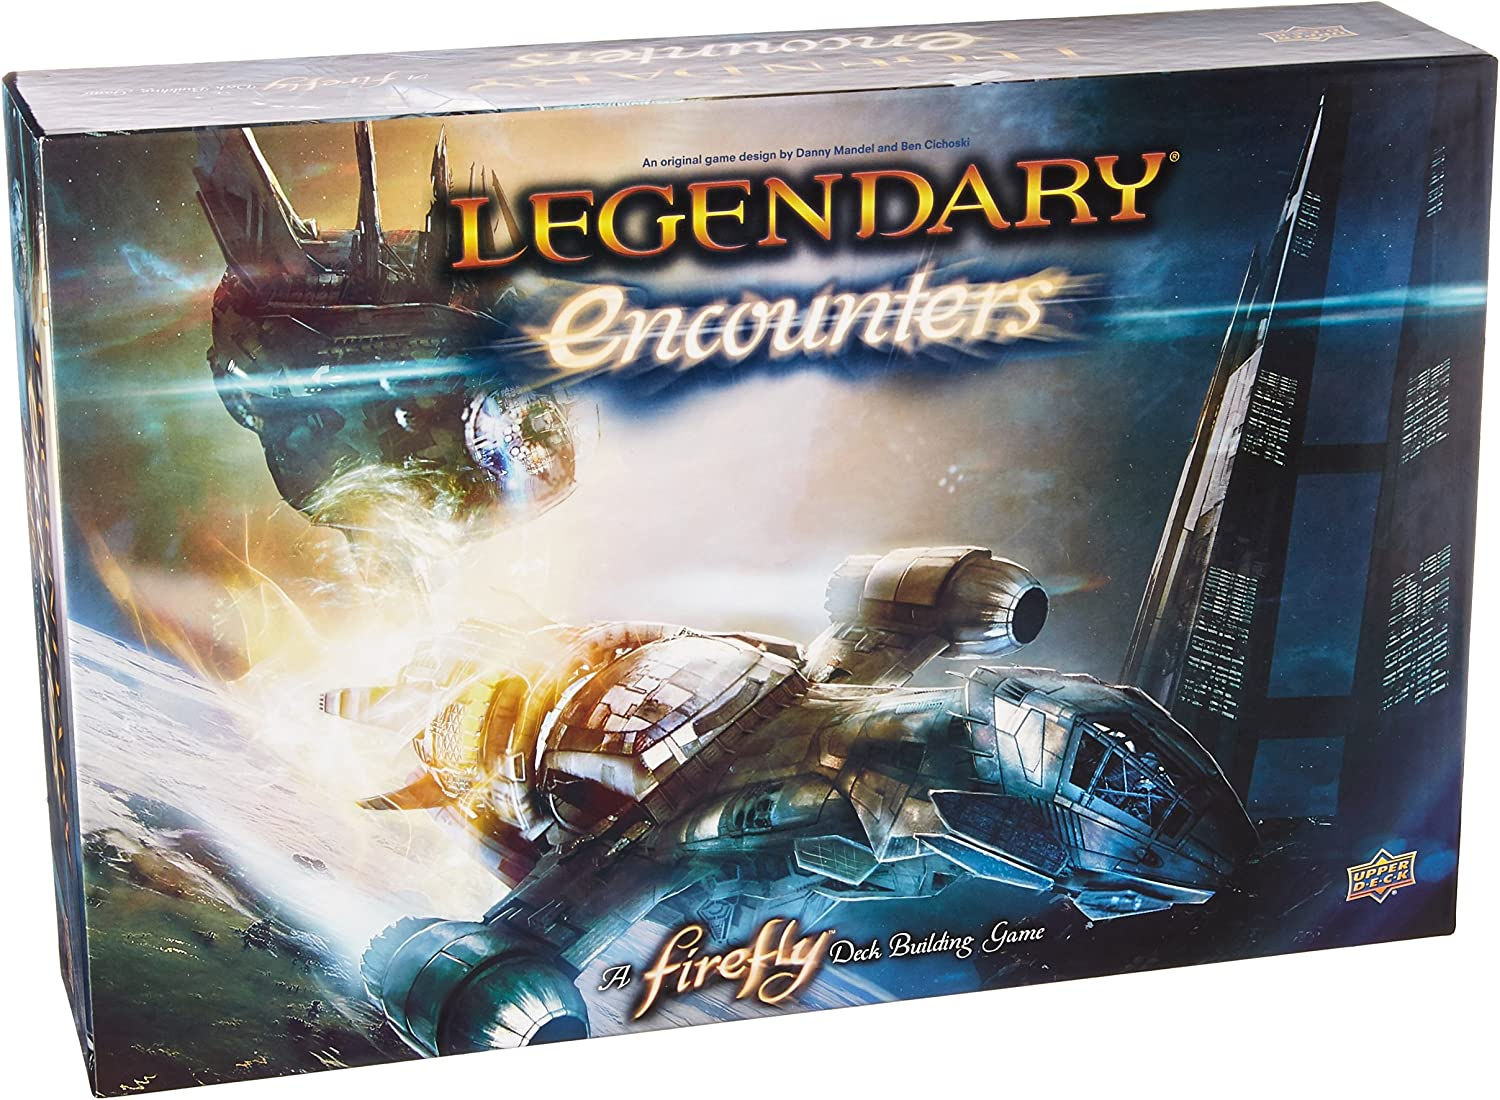 Legendary Encounters Deck Building Game: A Firefly Deck Building ...